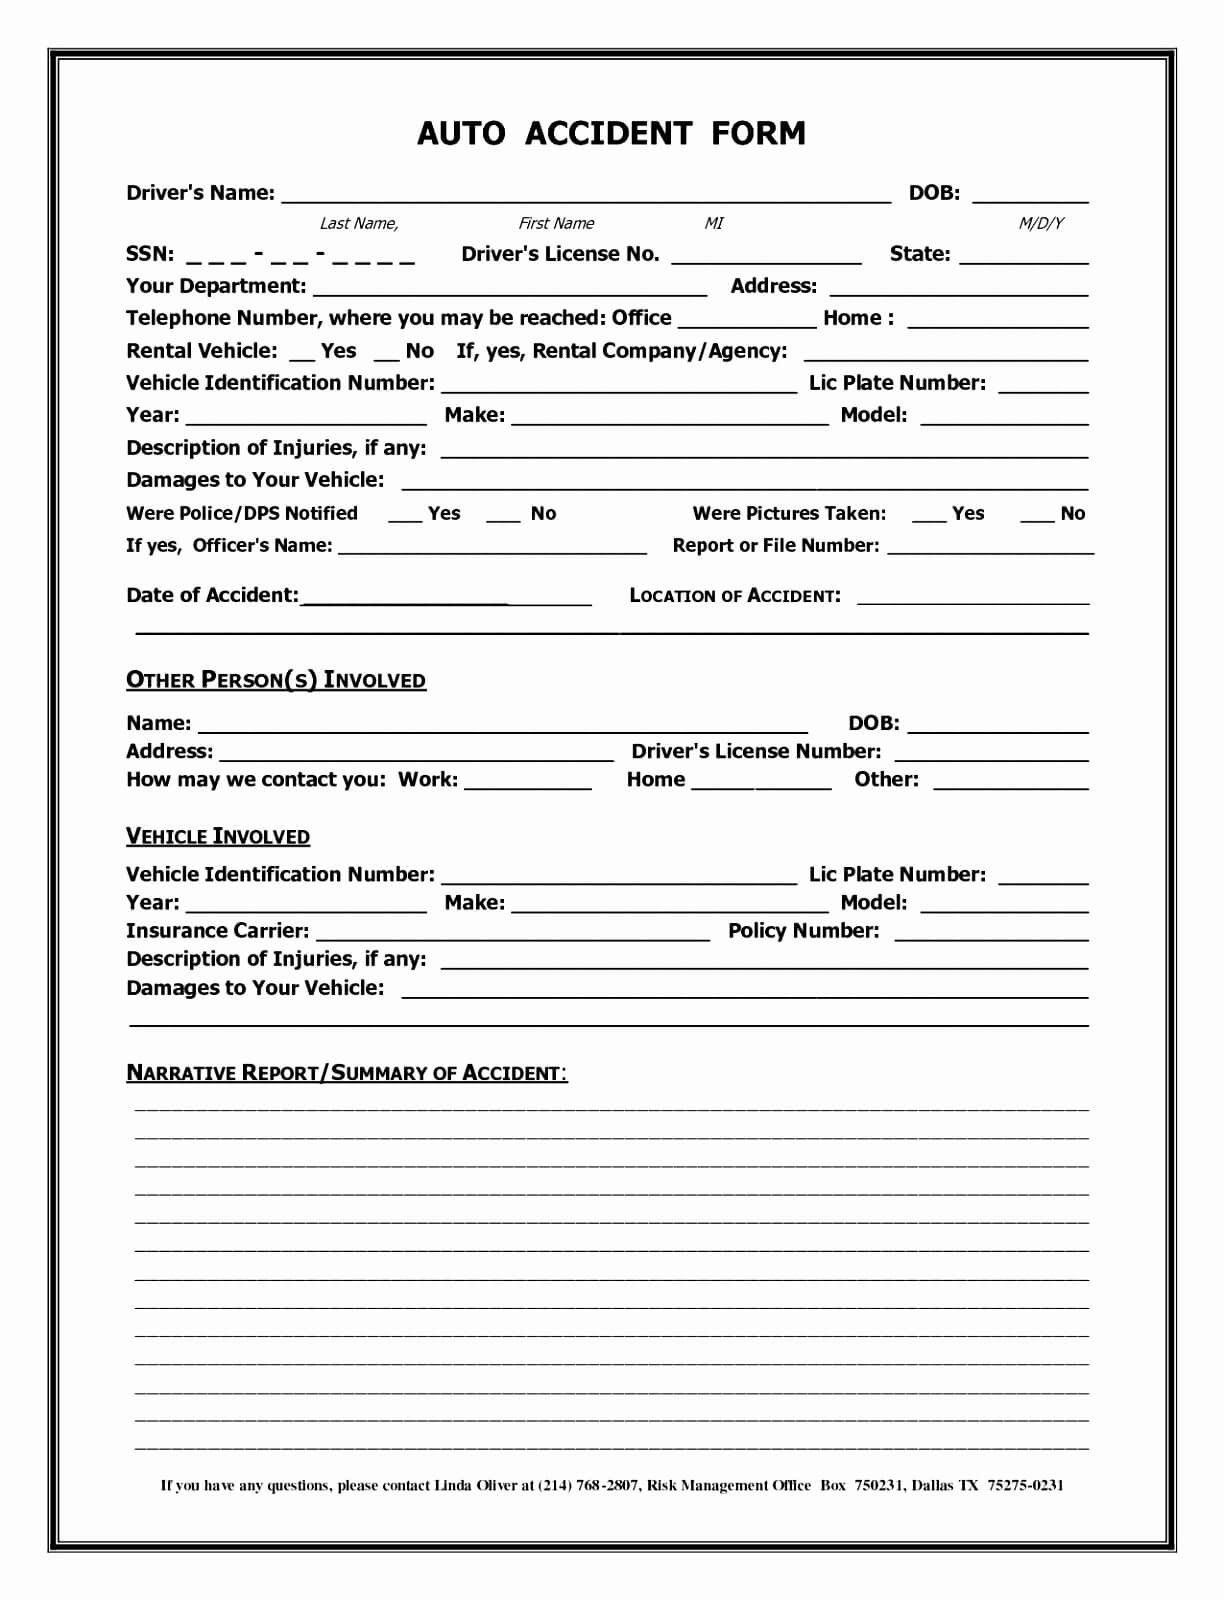 007 Accident Report Forms Template Auto Form California With Regard To Motor Vehicle Accident Report Form Template